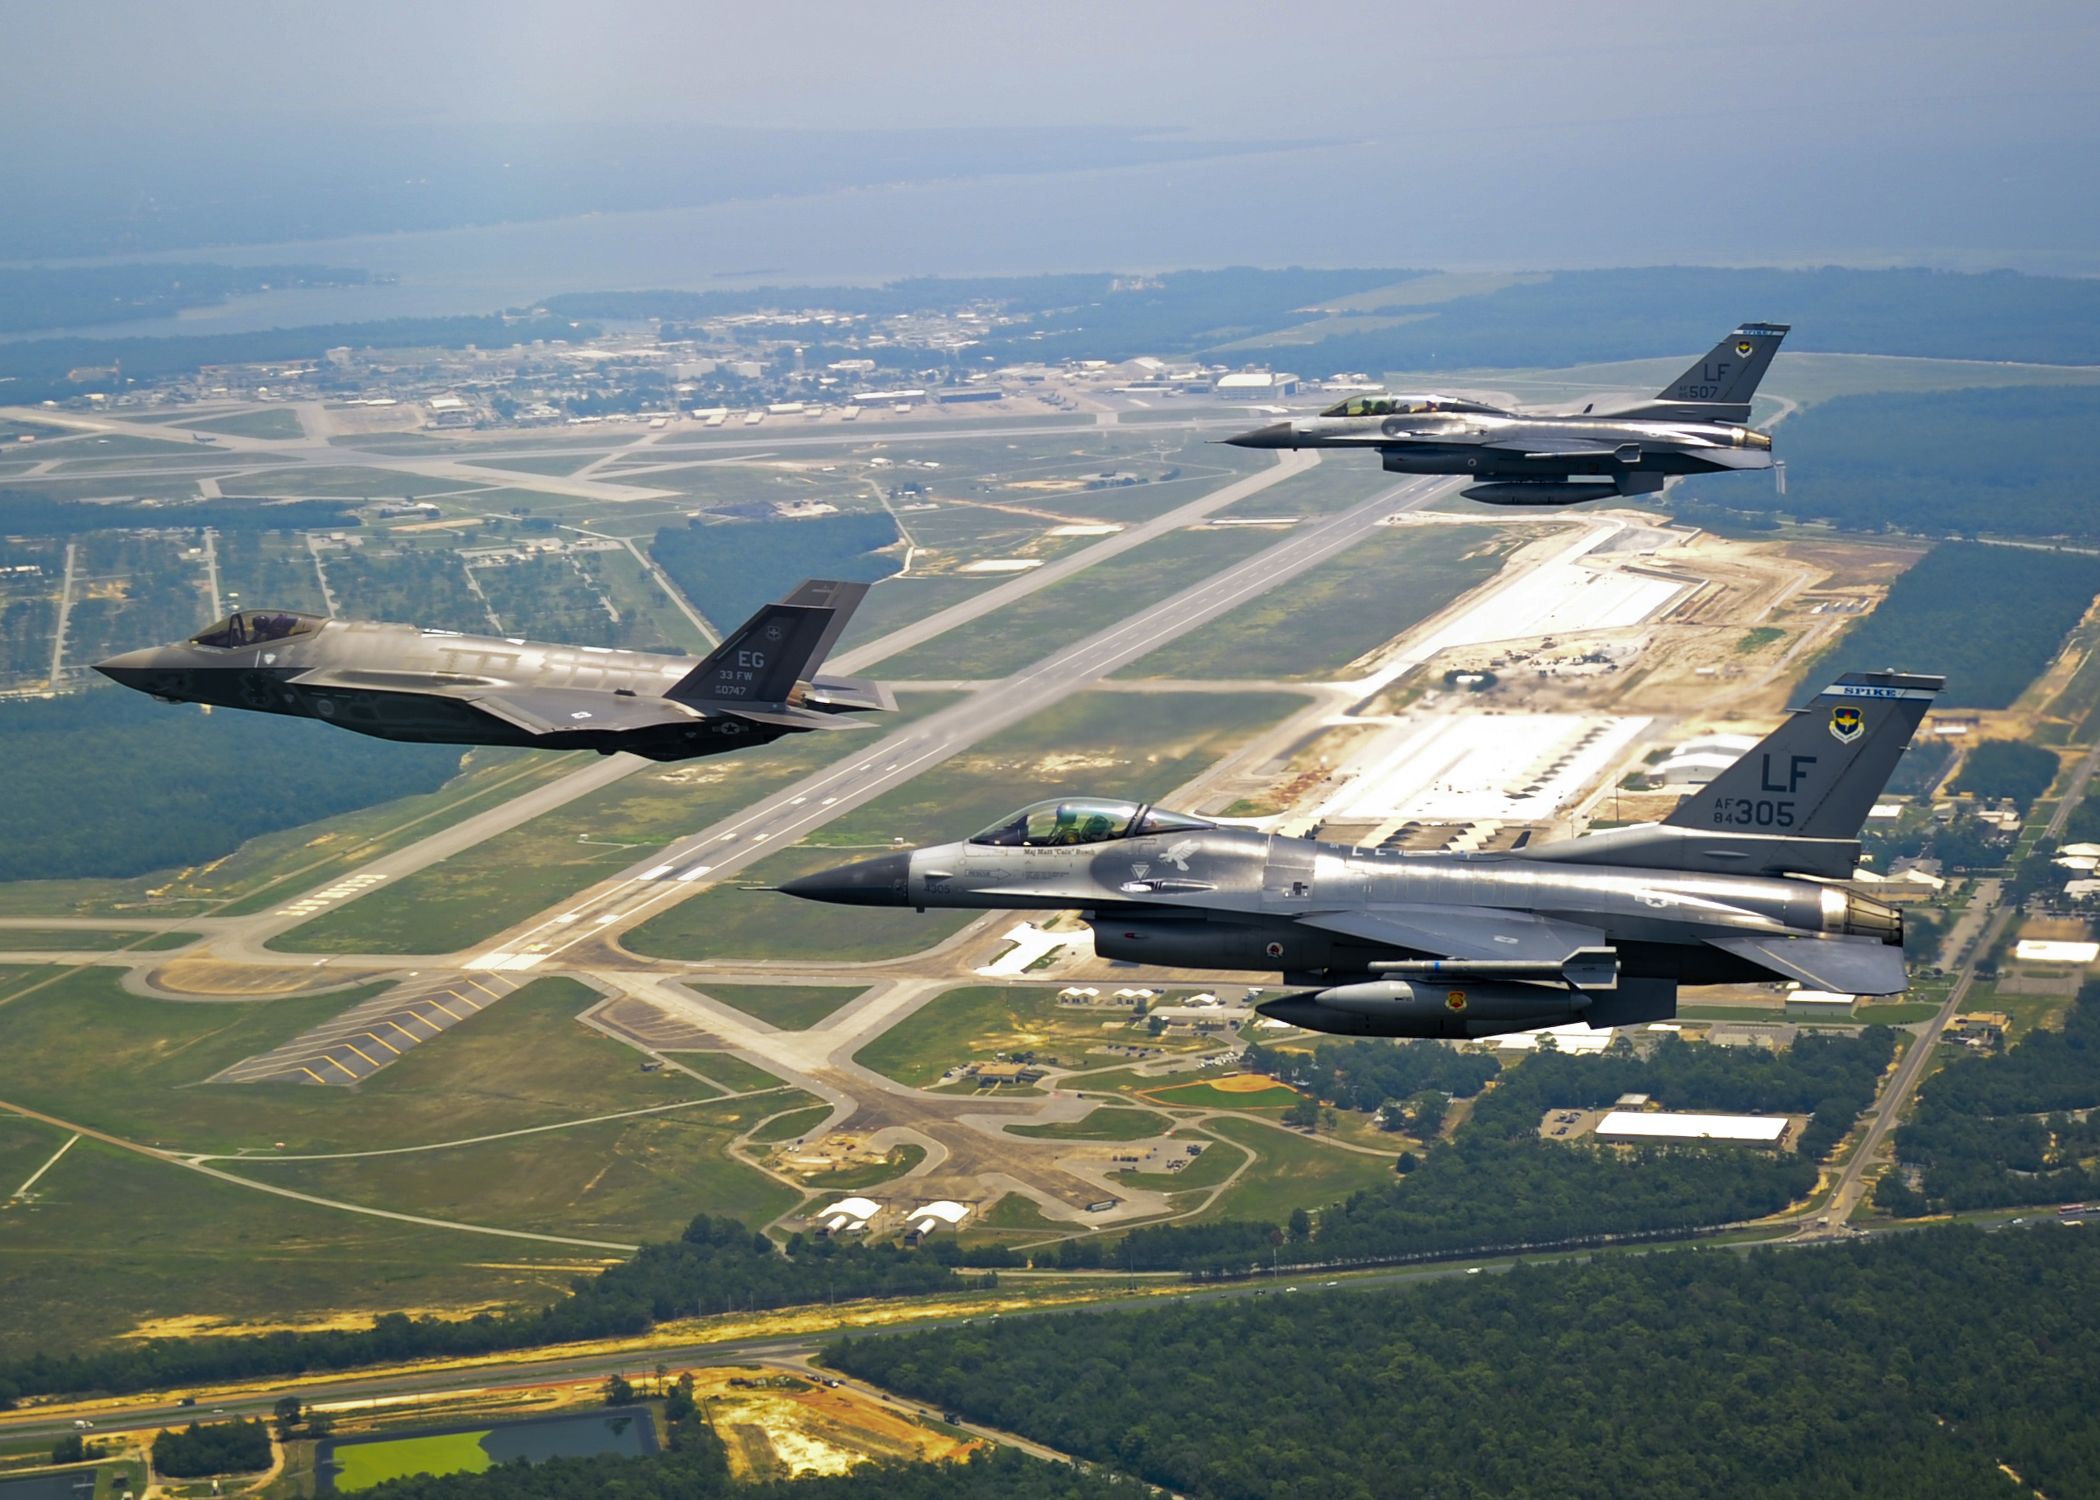 Air Force Awards Lrs Federal Eglin Afb Fence To Fence